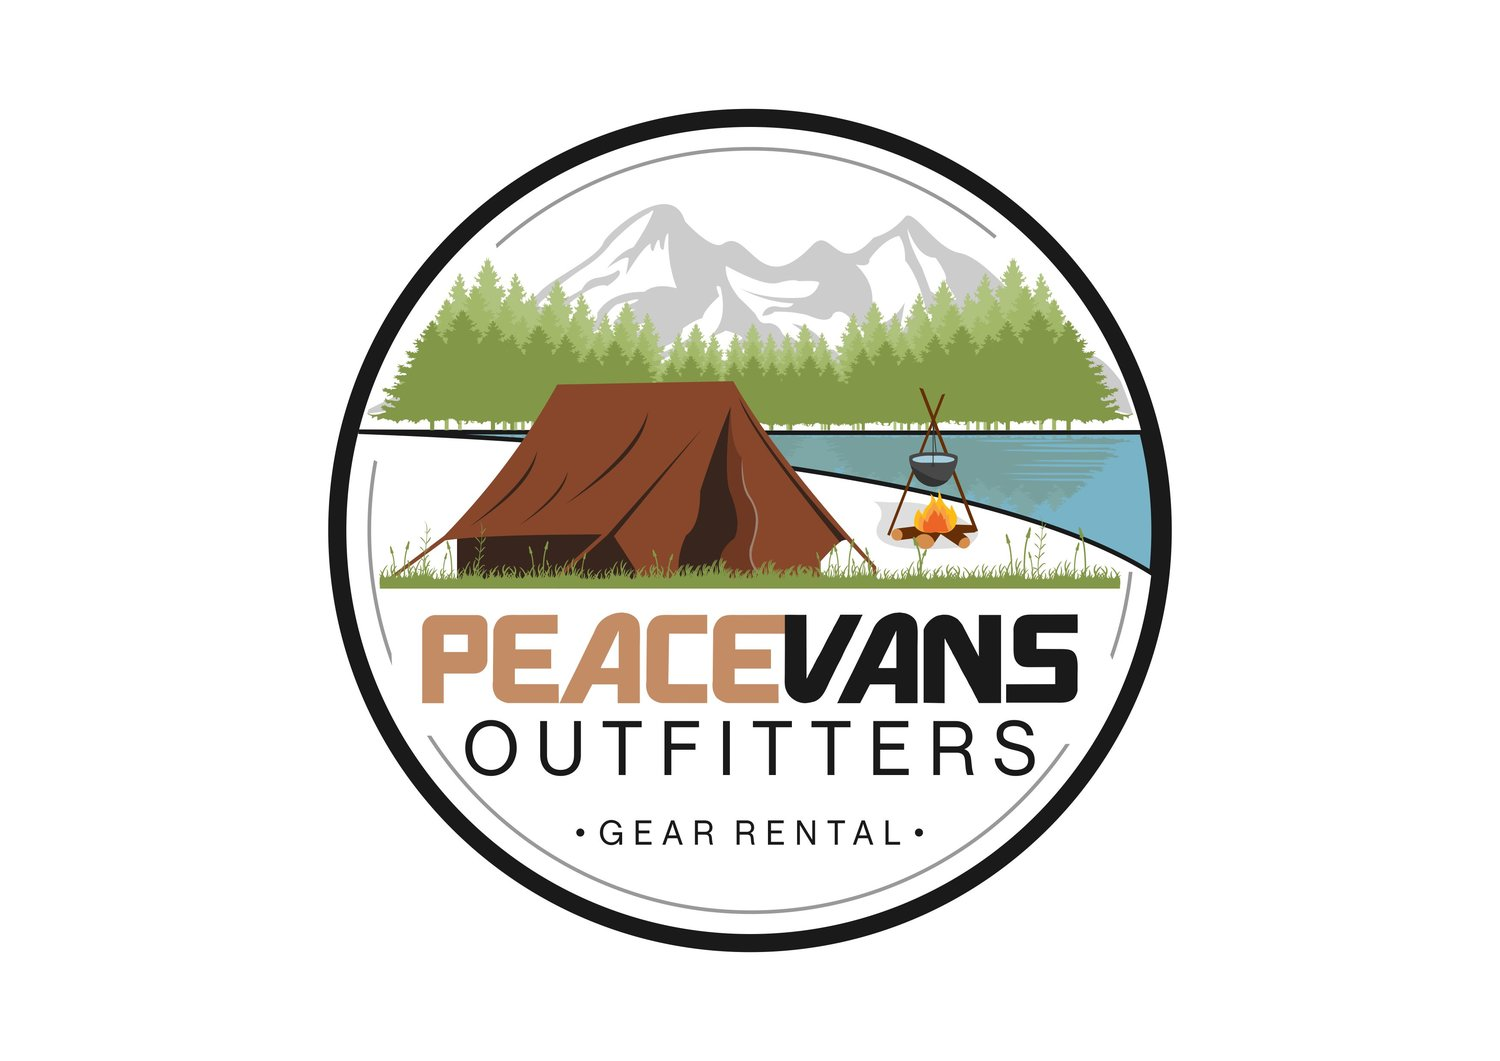 Peace Vans Outfitters: Gear Rental